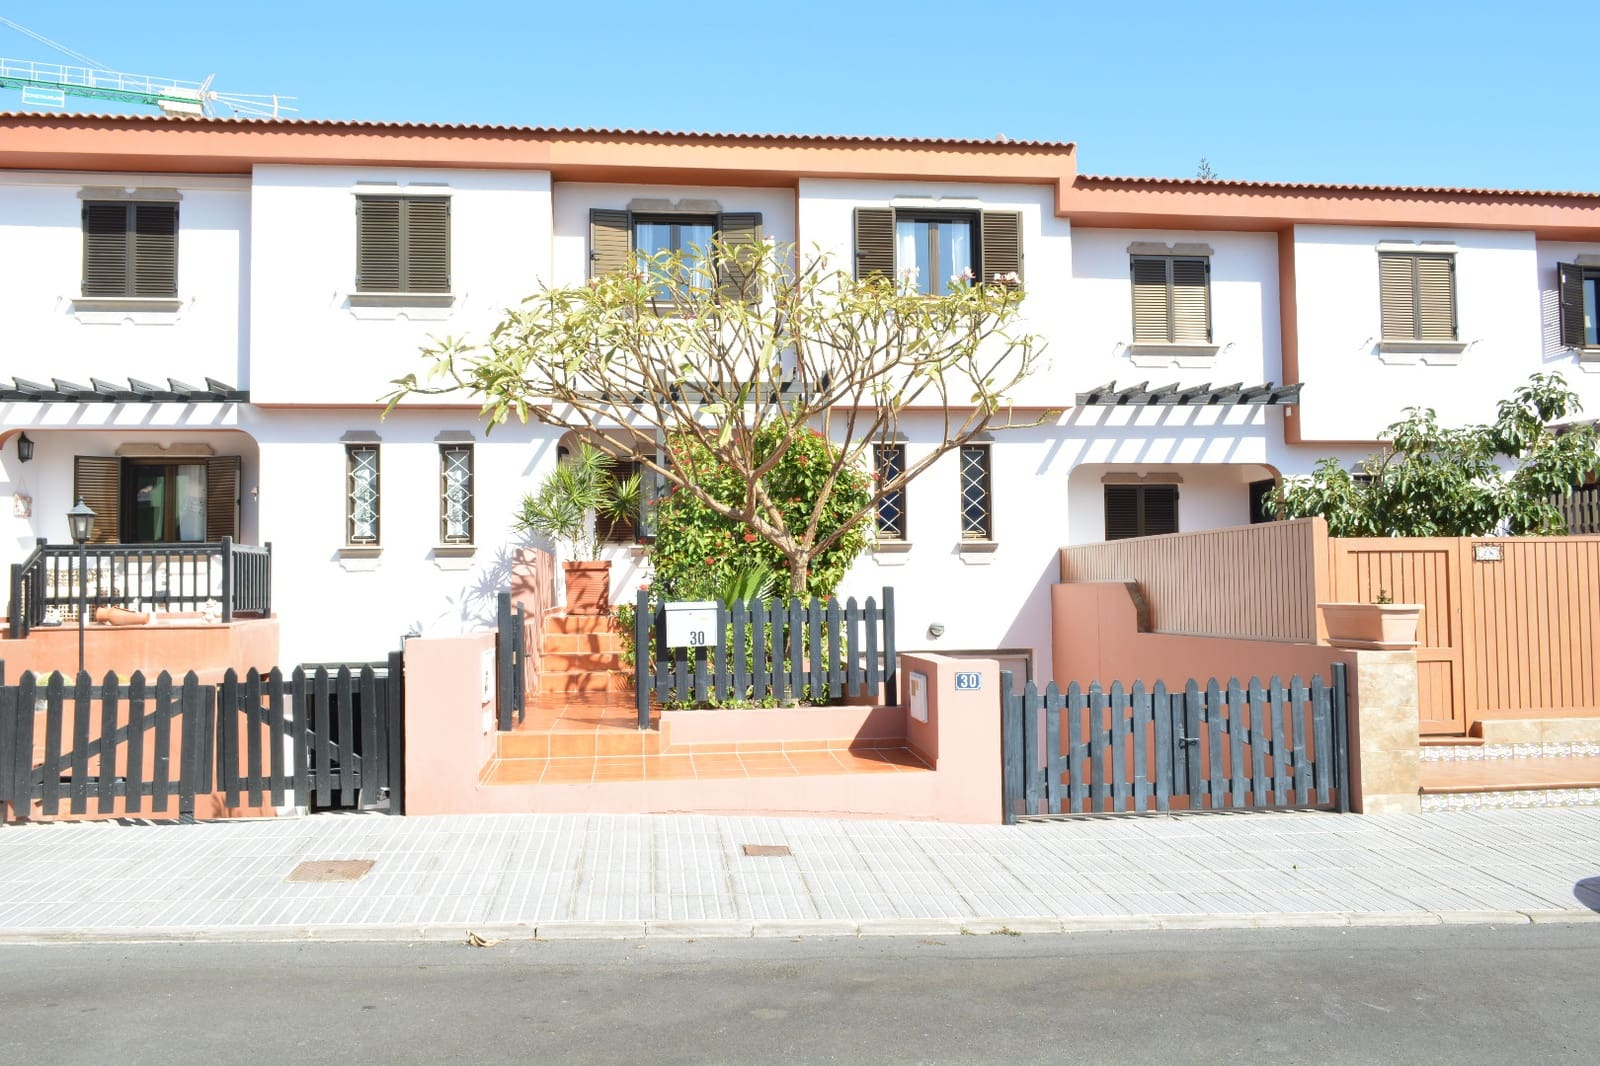 4 bedroom Terraced Villa for sale in San Fernando with garage - € 395,000 (Ref: 4964031)